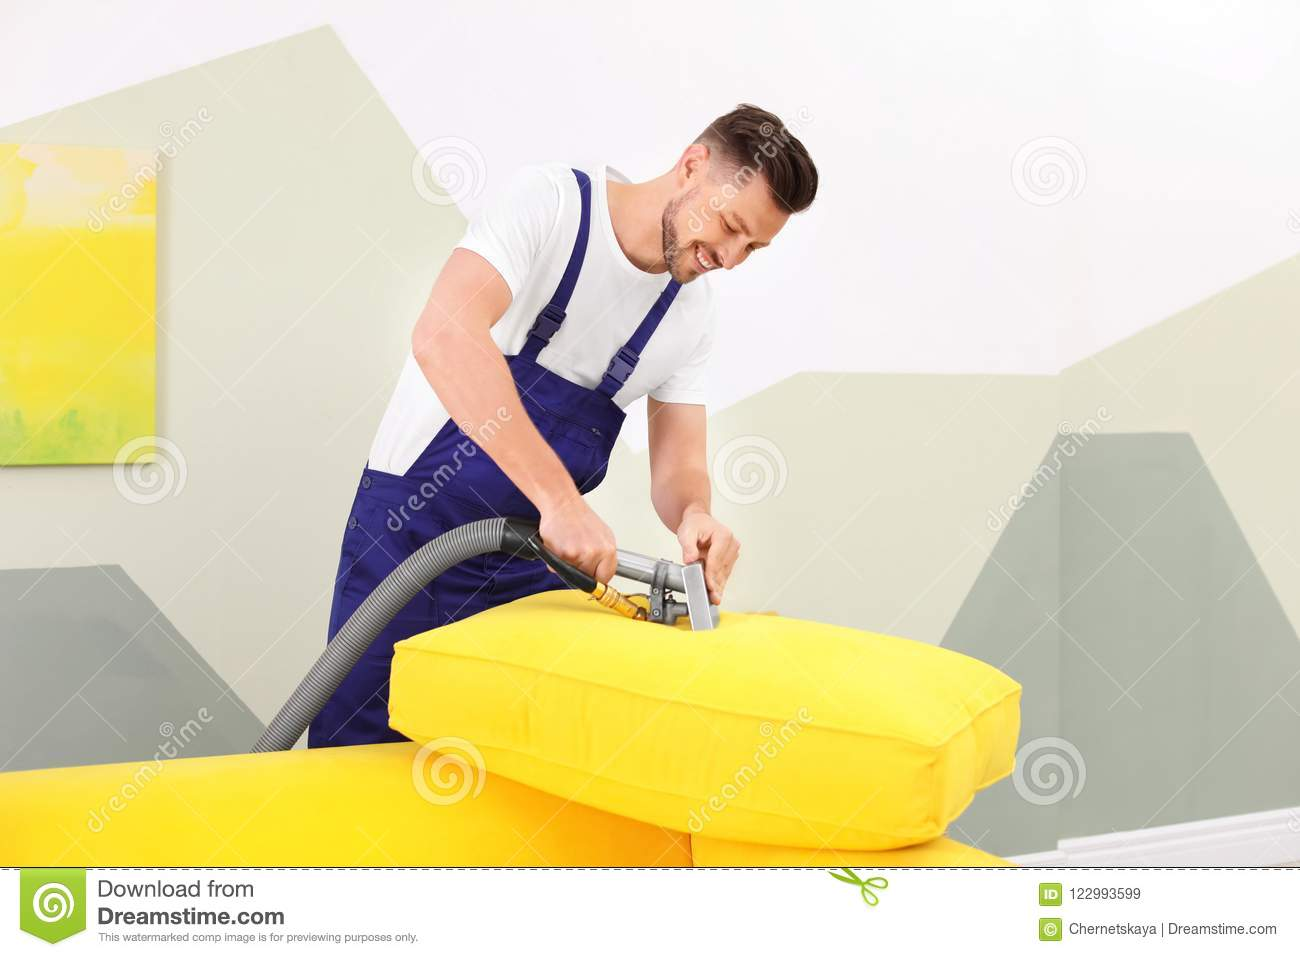 Dry Cleaning Worker Removing Dirt From Sofa Cushion Stock Image